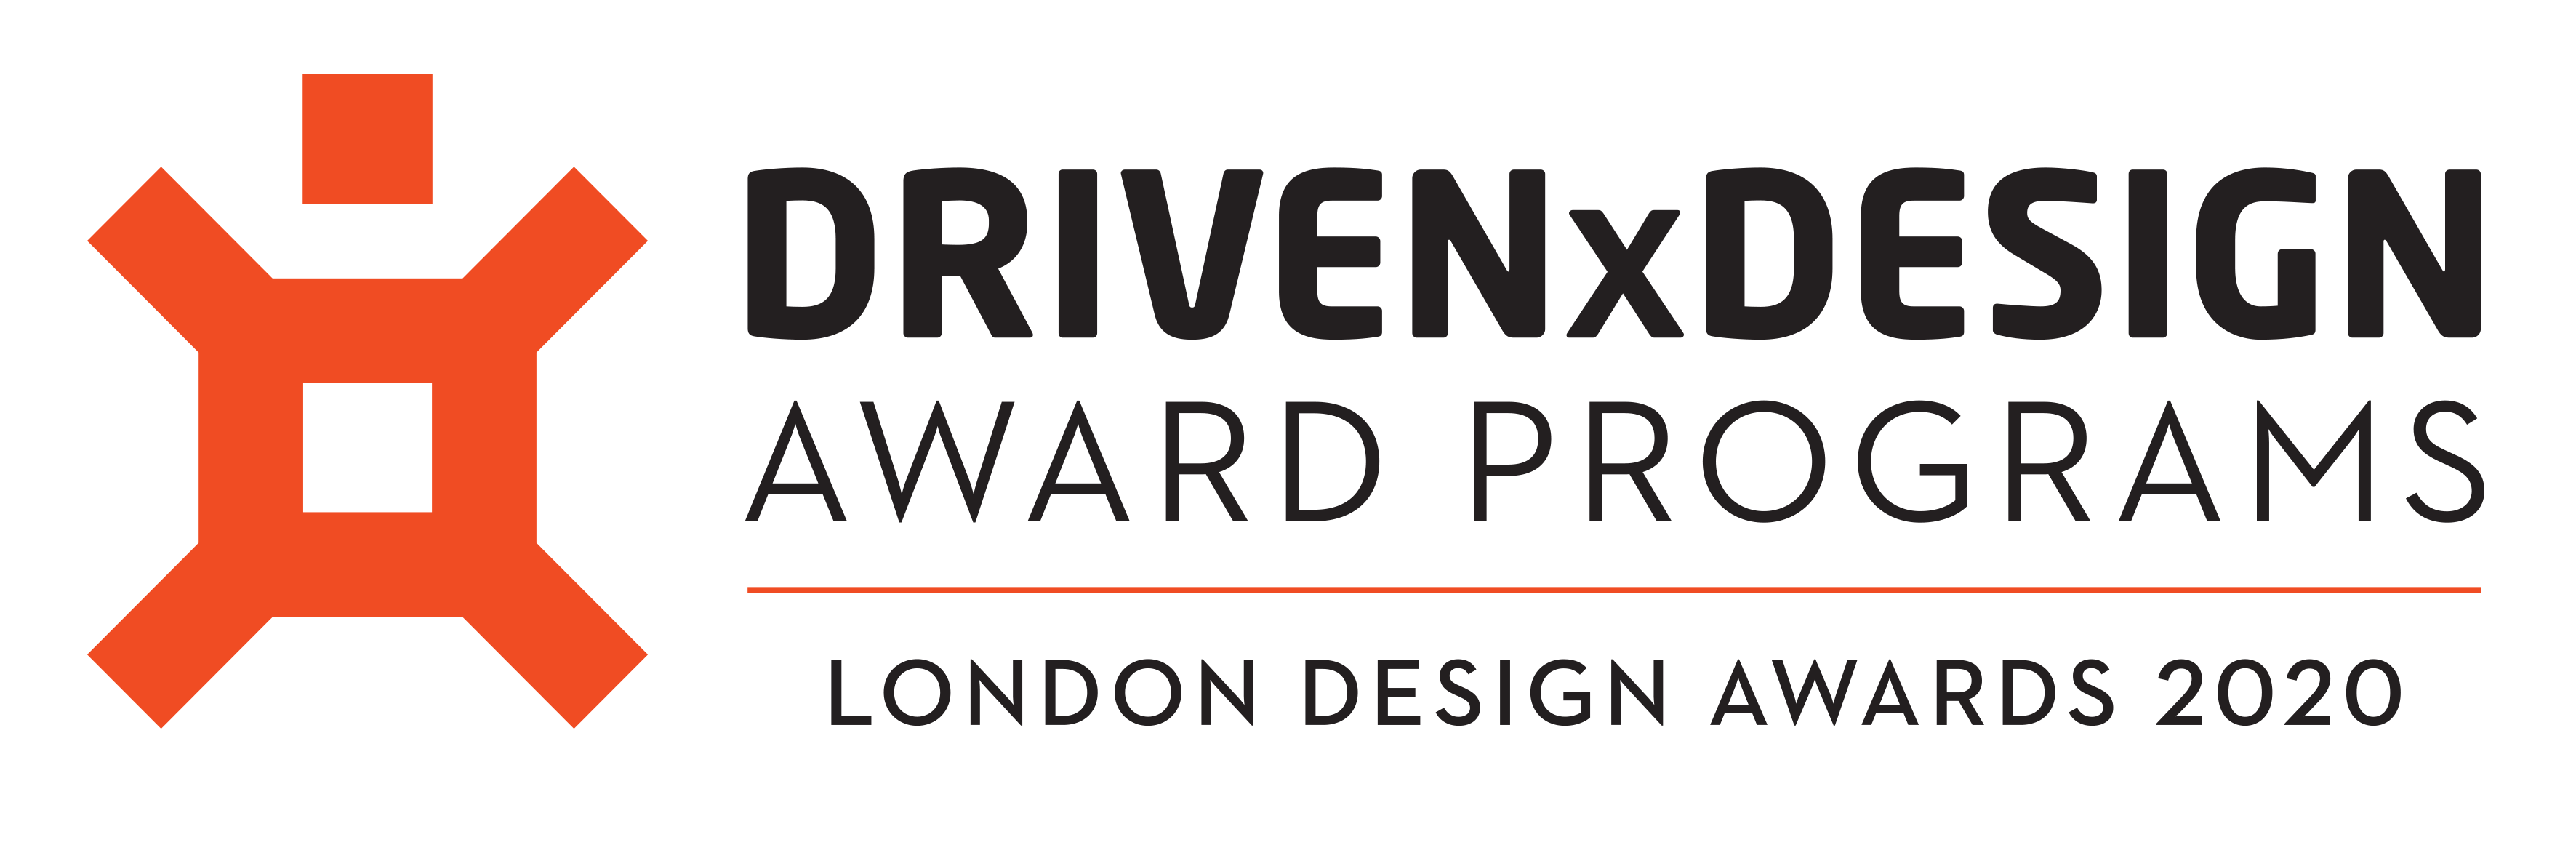 London Design Awards